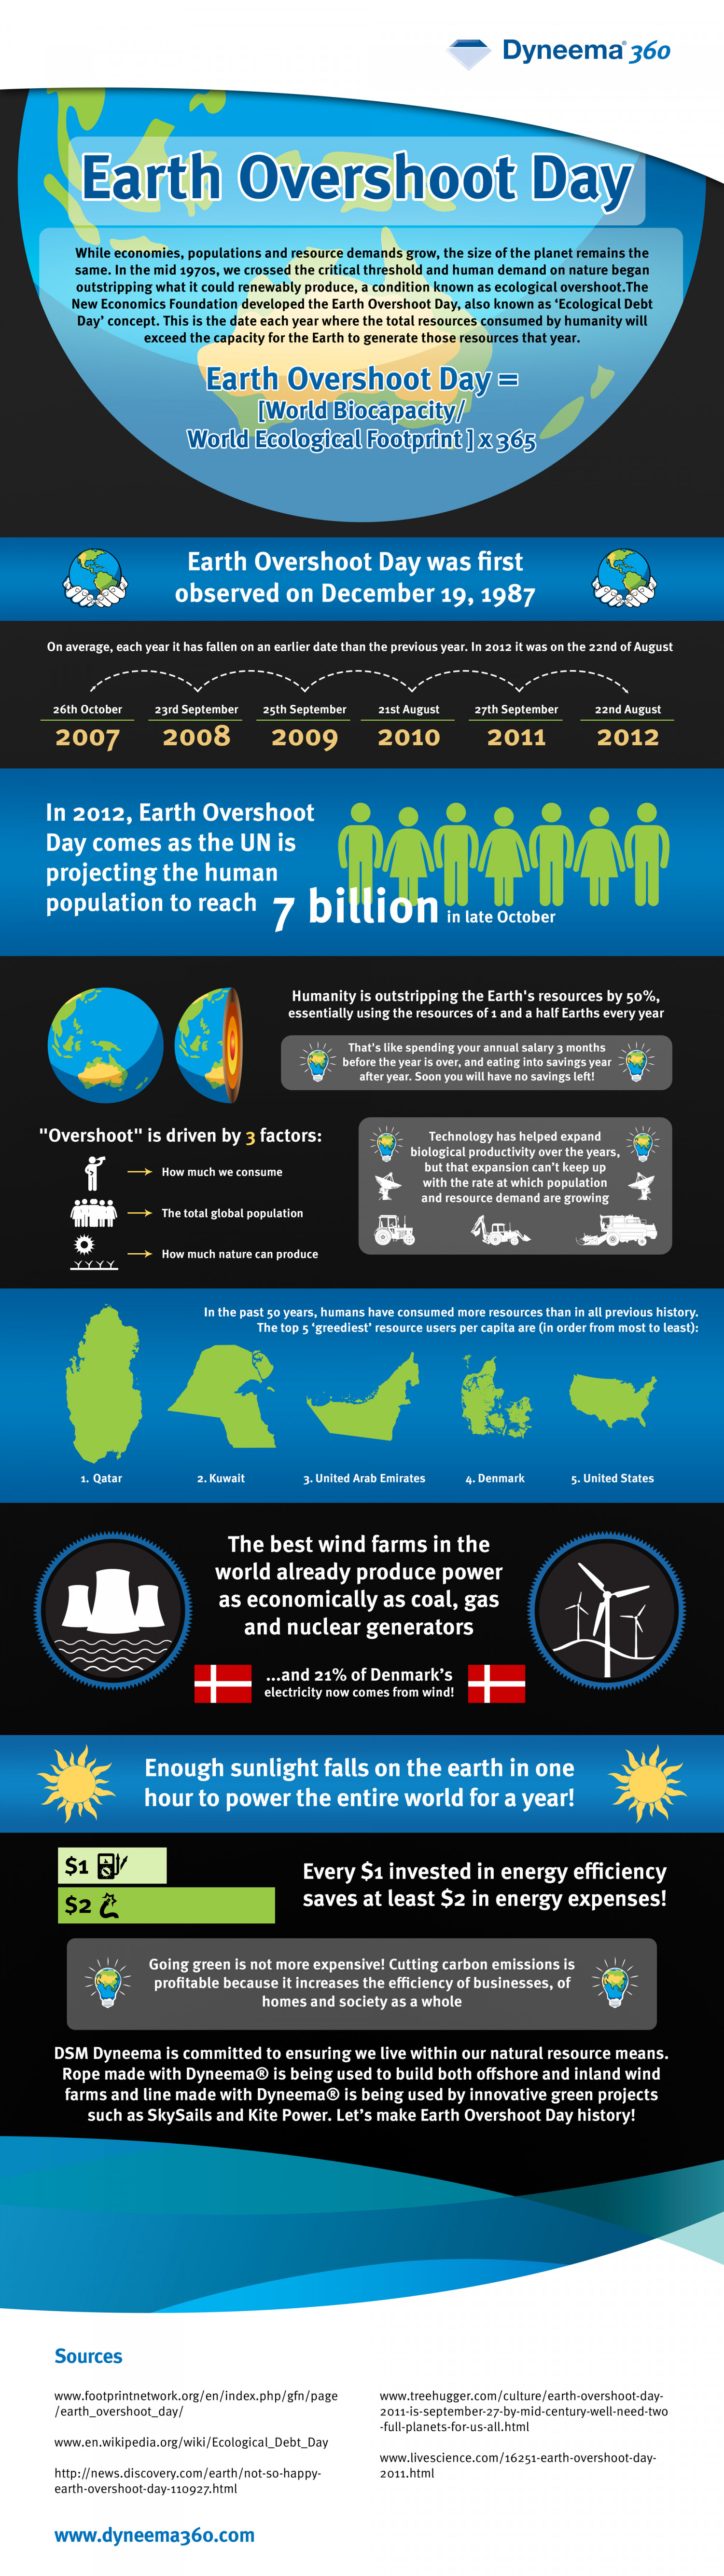 Earth Overshoot Day Infographic